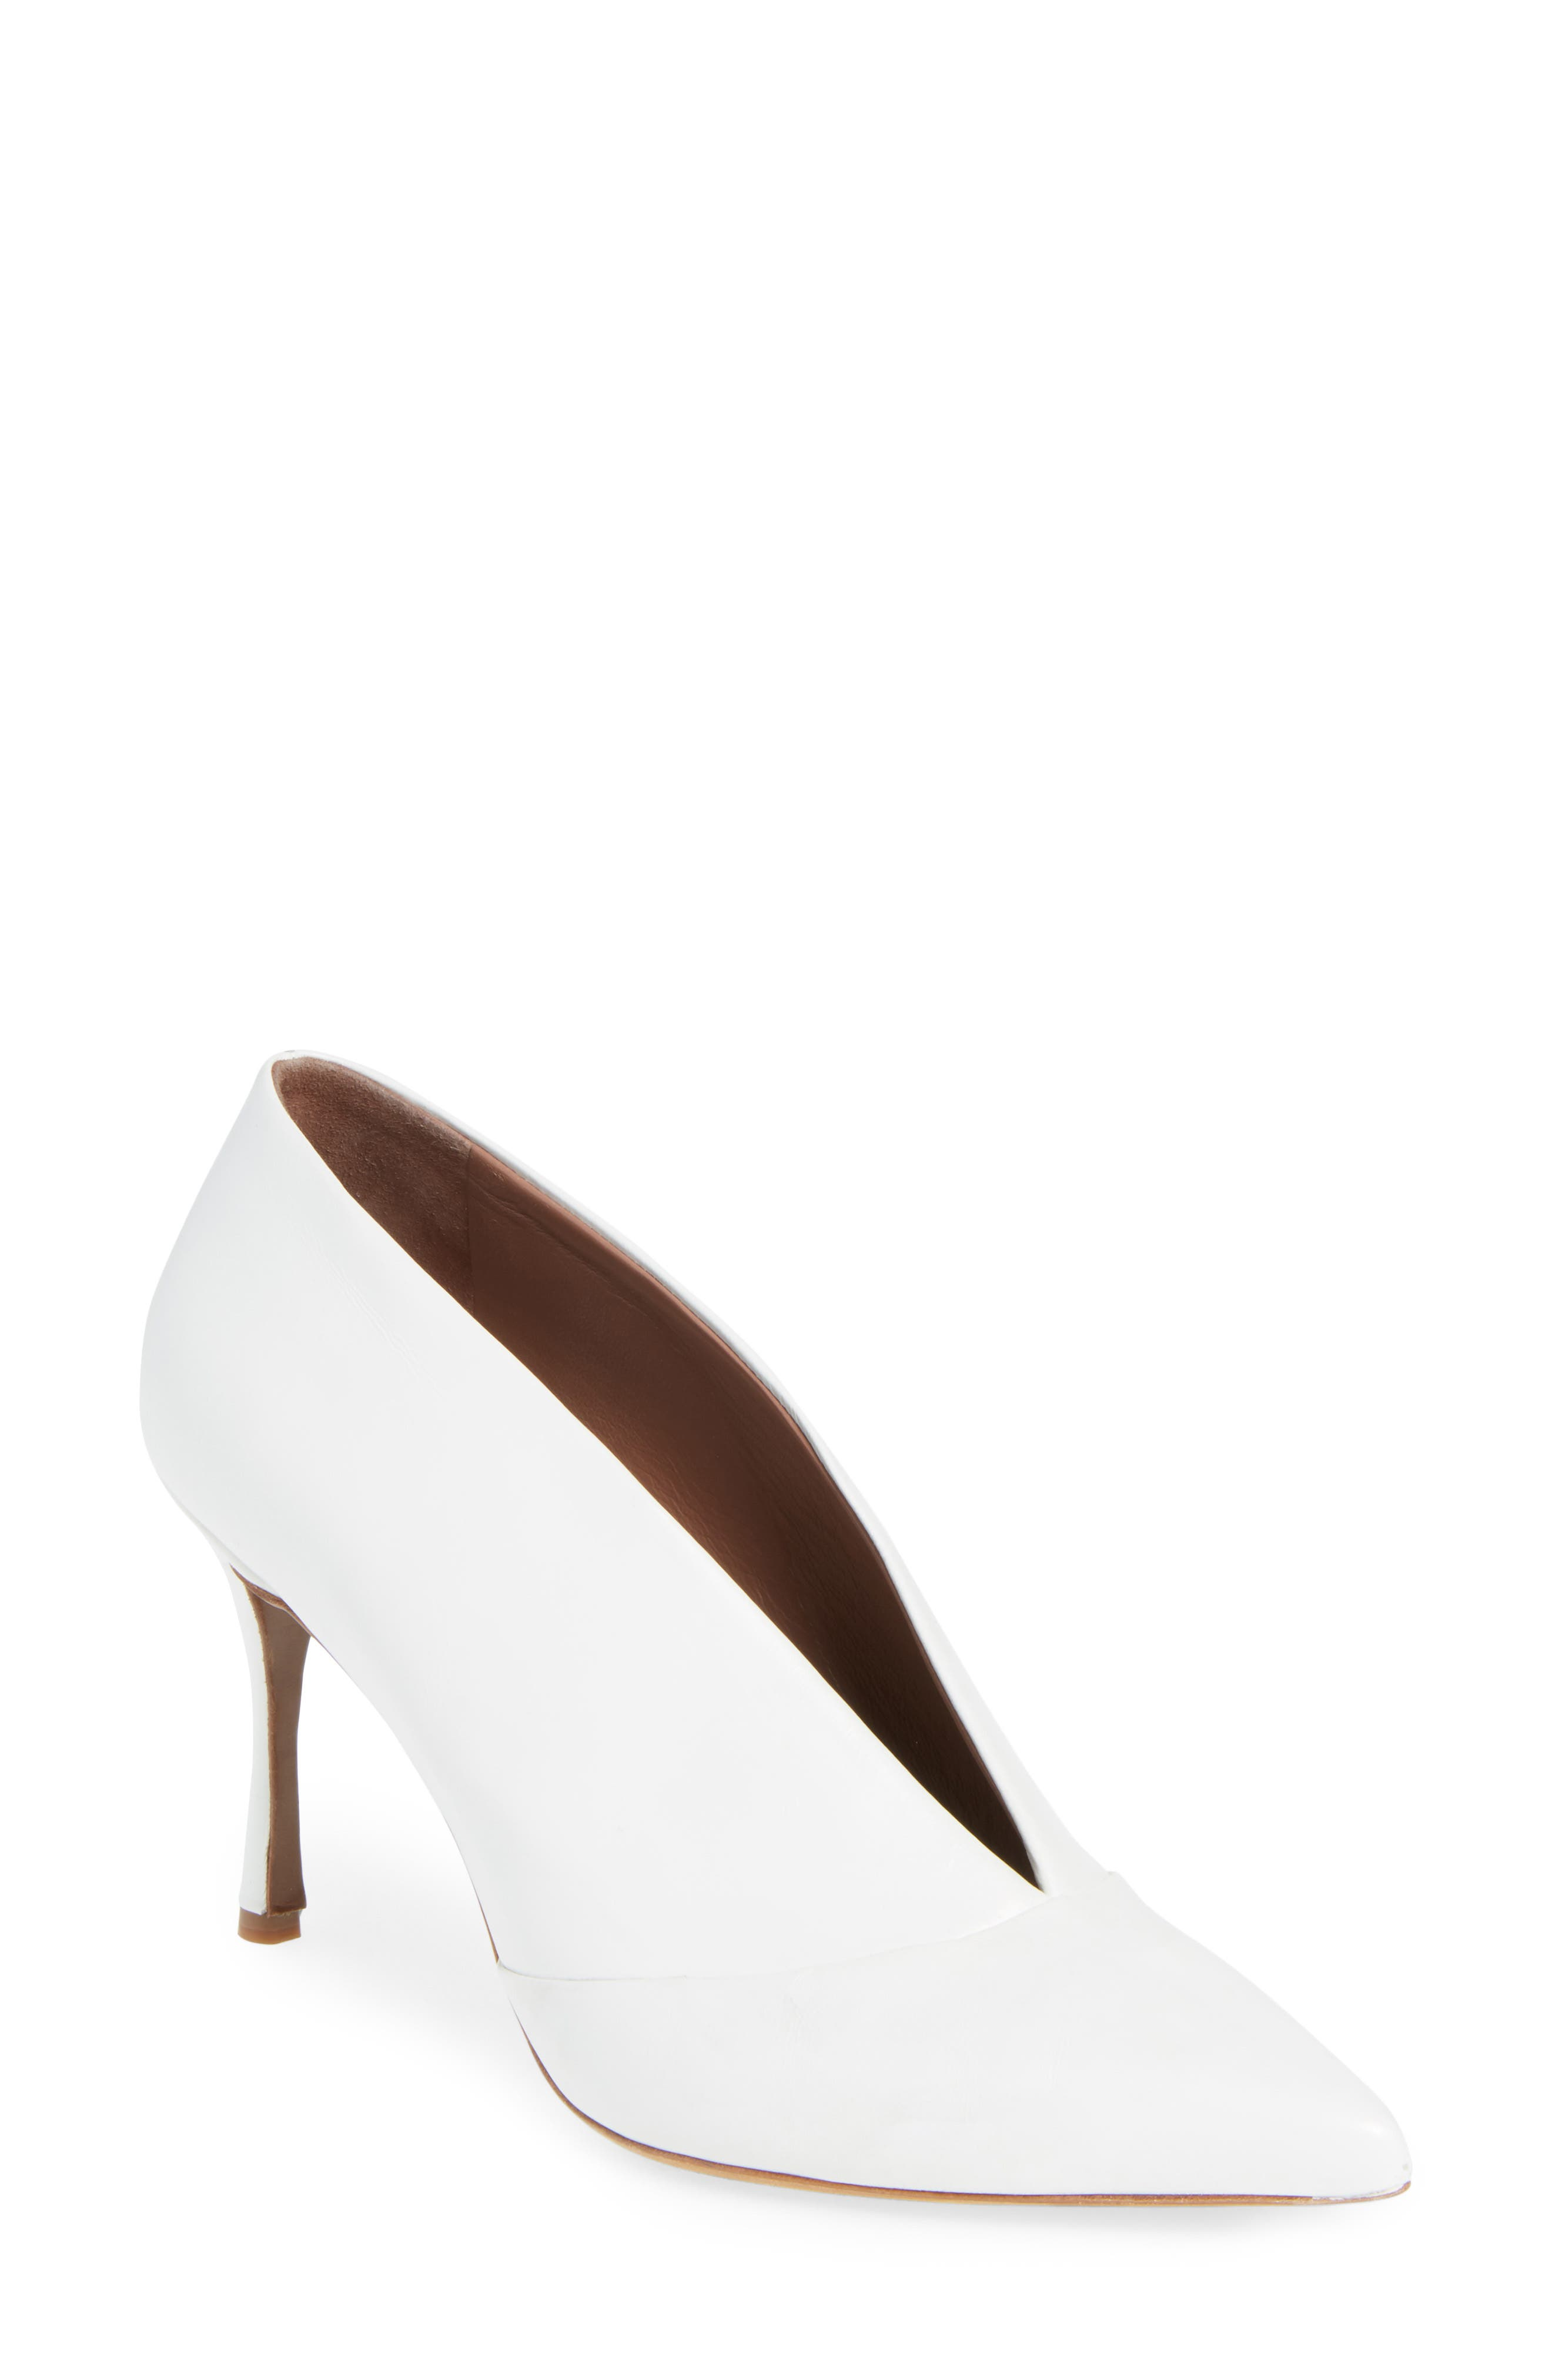 Strike Pointy Toe Pump,                             Main thumbnail 1, color,                             100